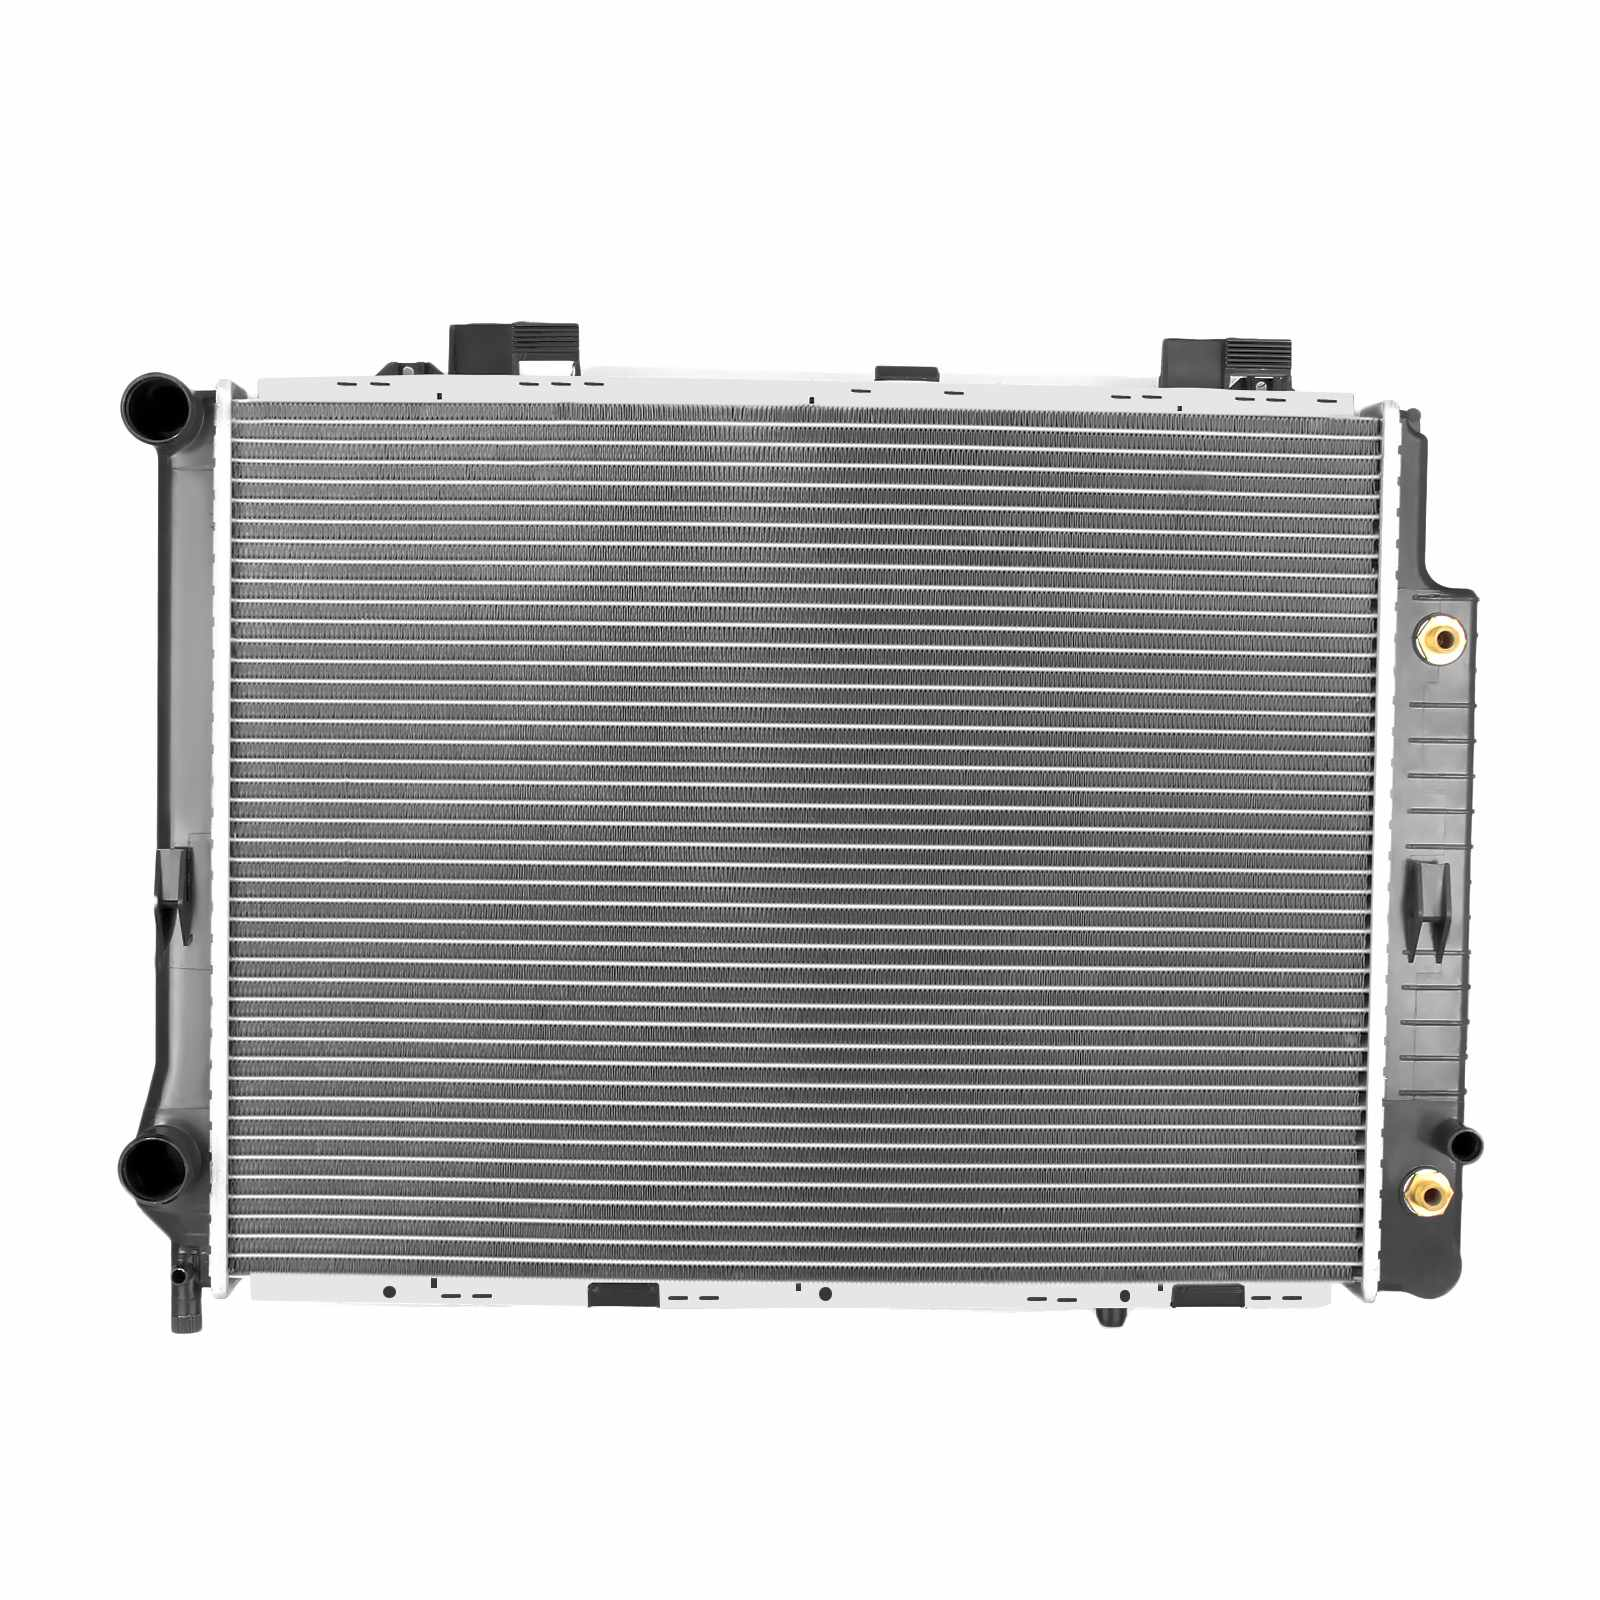 Radiator For Mercedes-Benz E-Class W210 S210 E280 E320 Auto / Manual 95-02 New